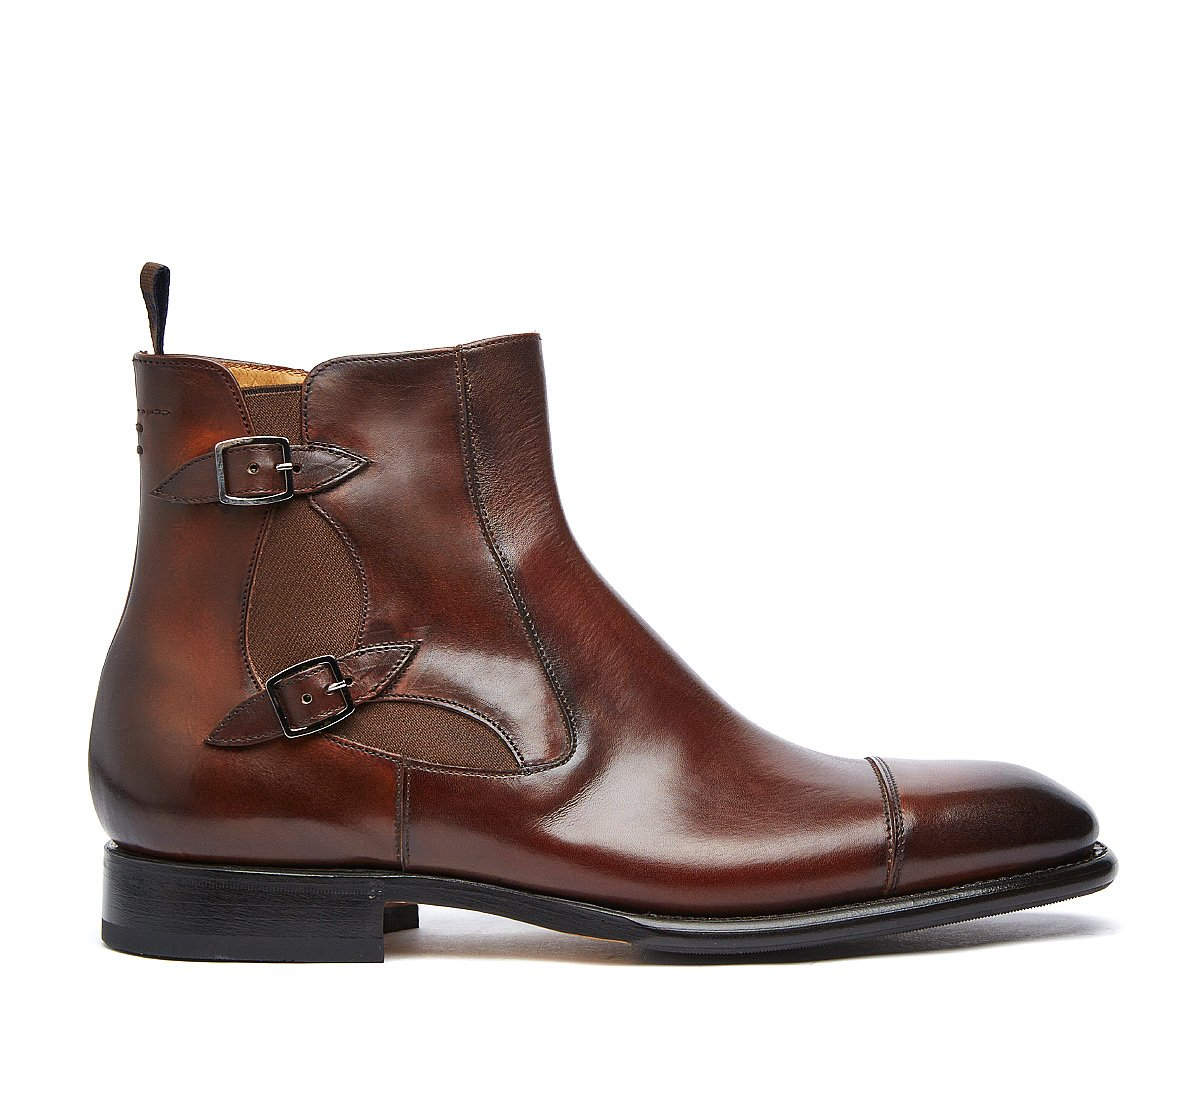 Beatle boot Flex Goodyear with double buckle in luxury calf leather